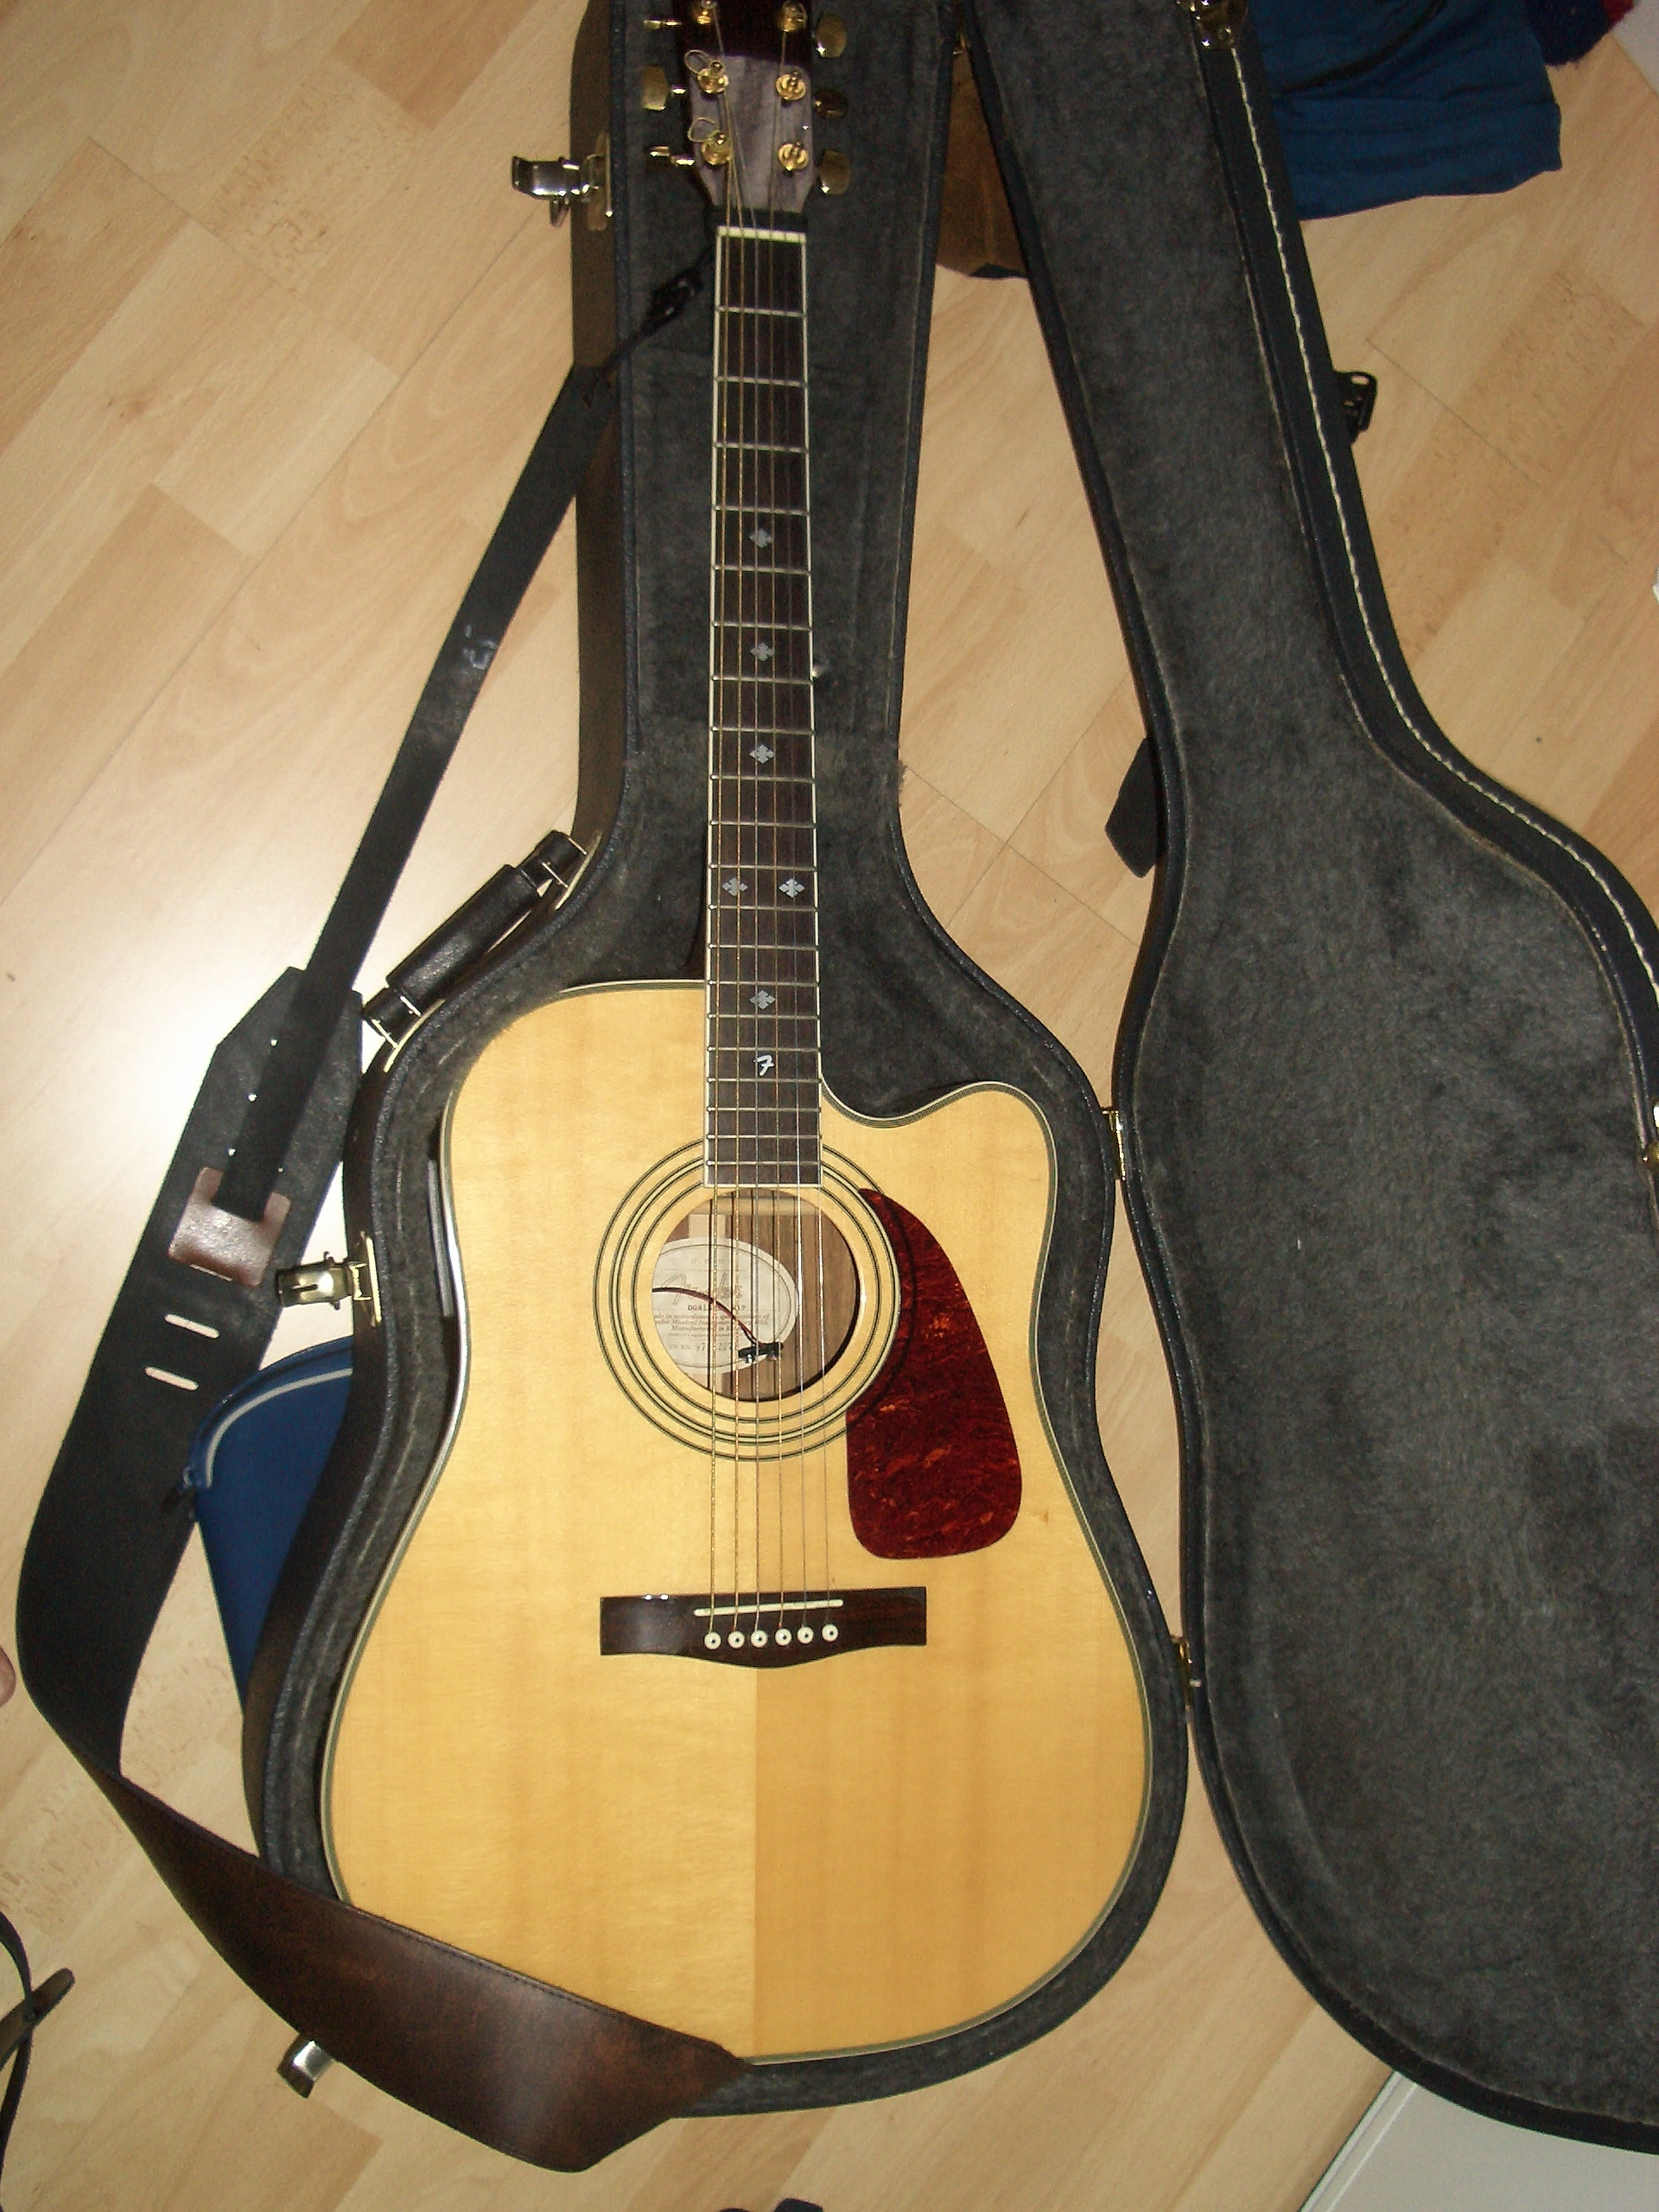 Acoustic-electric guitar - Wikipedia